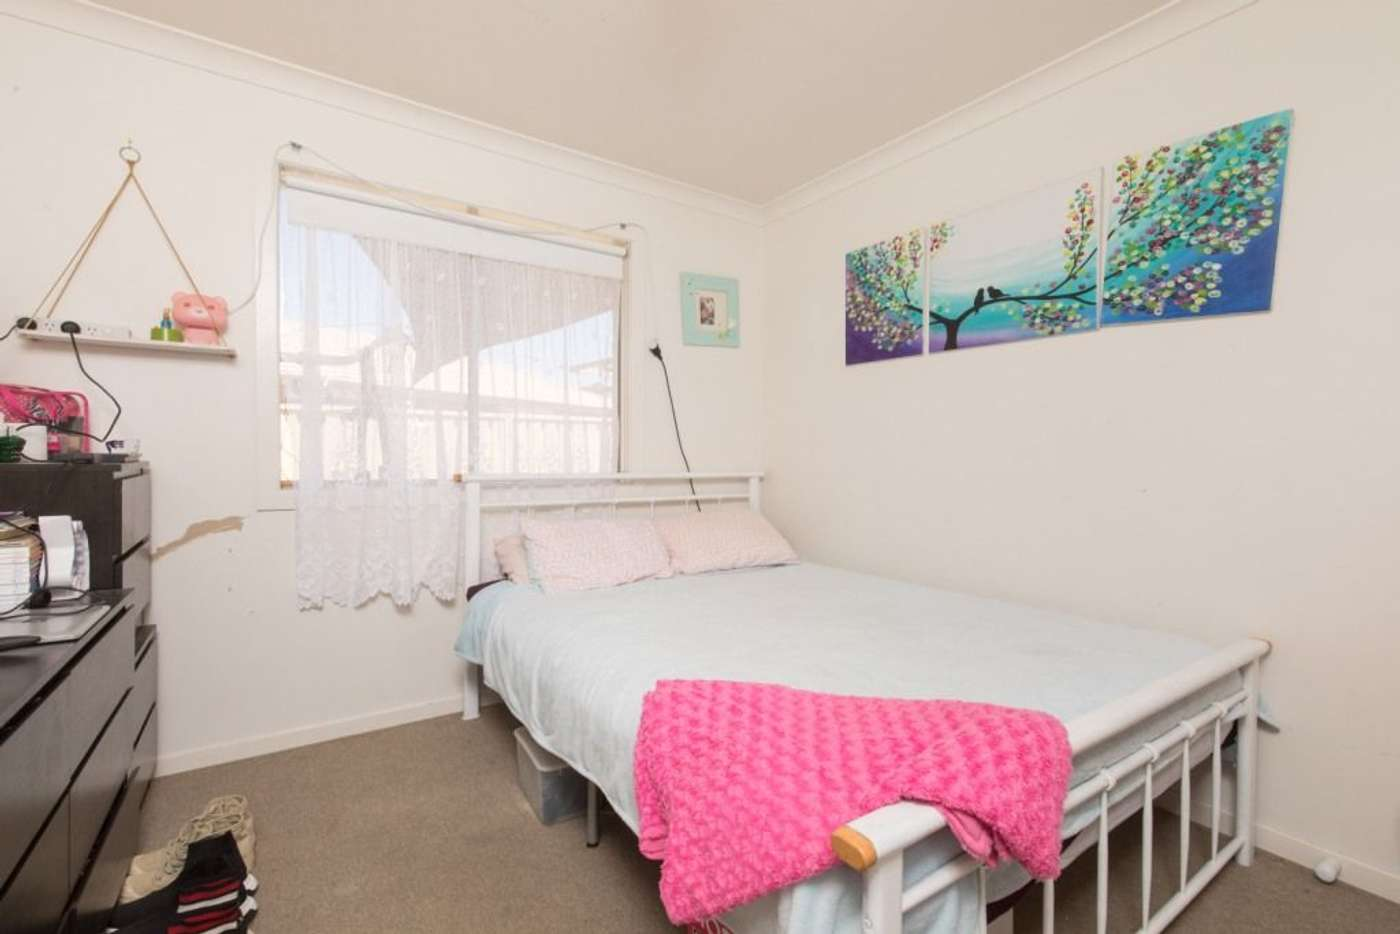 Sixth view of Homely house listing, 12 Reisling Court, Mildura VIC 3500